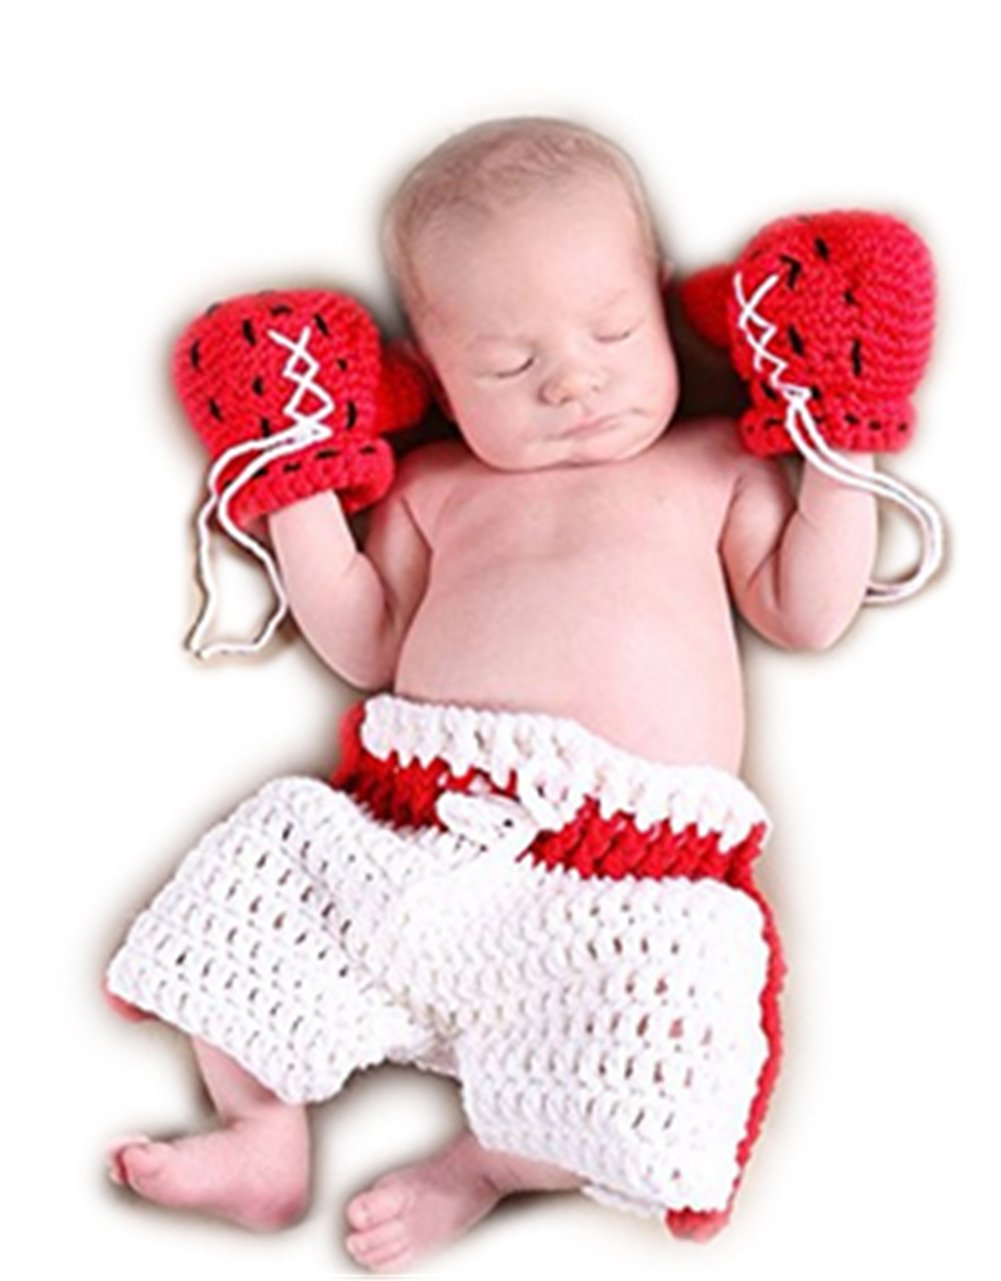 Handmade Infant Newborn Baby Girl Boy Crochet Knit Champion K.O Gloves Shorts Photography Props Outfits Costume Auberllus